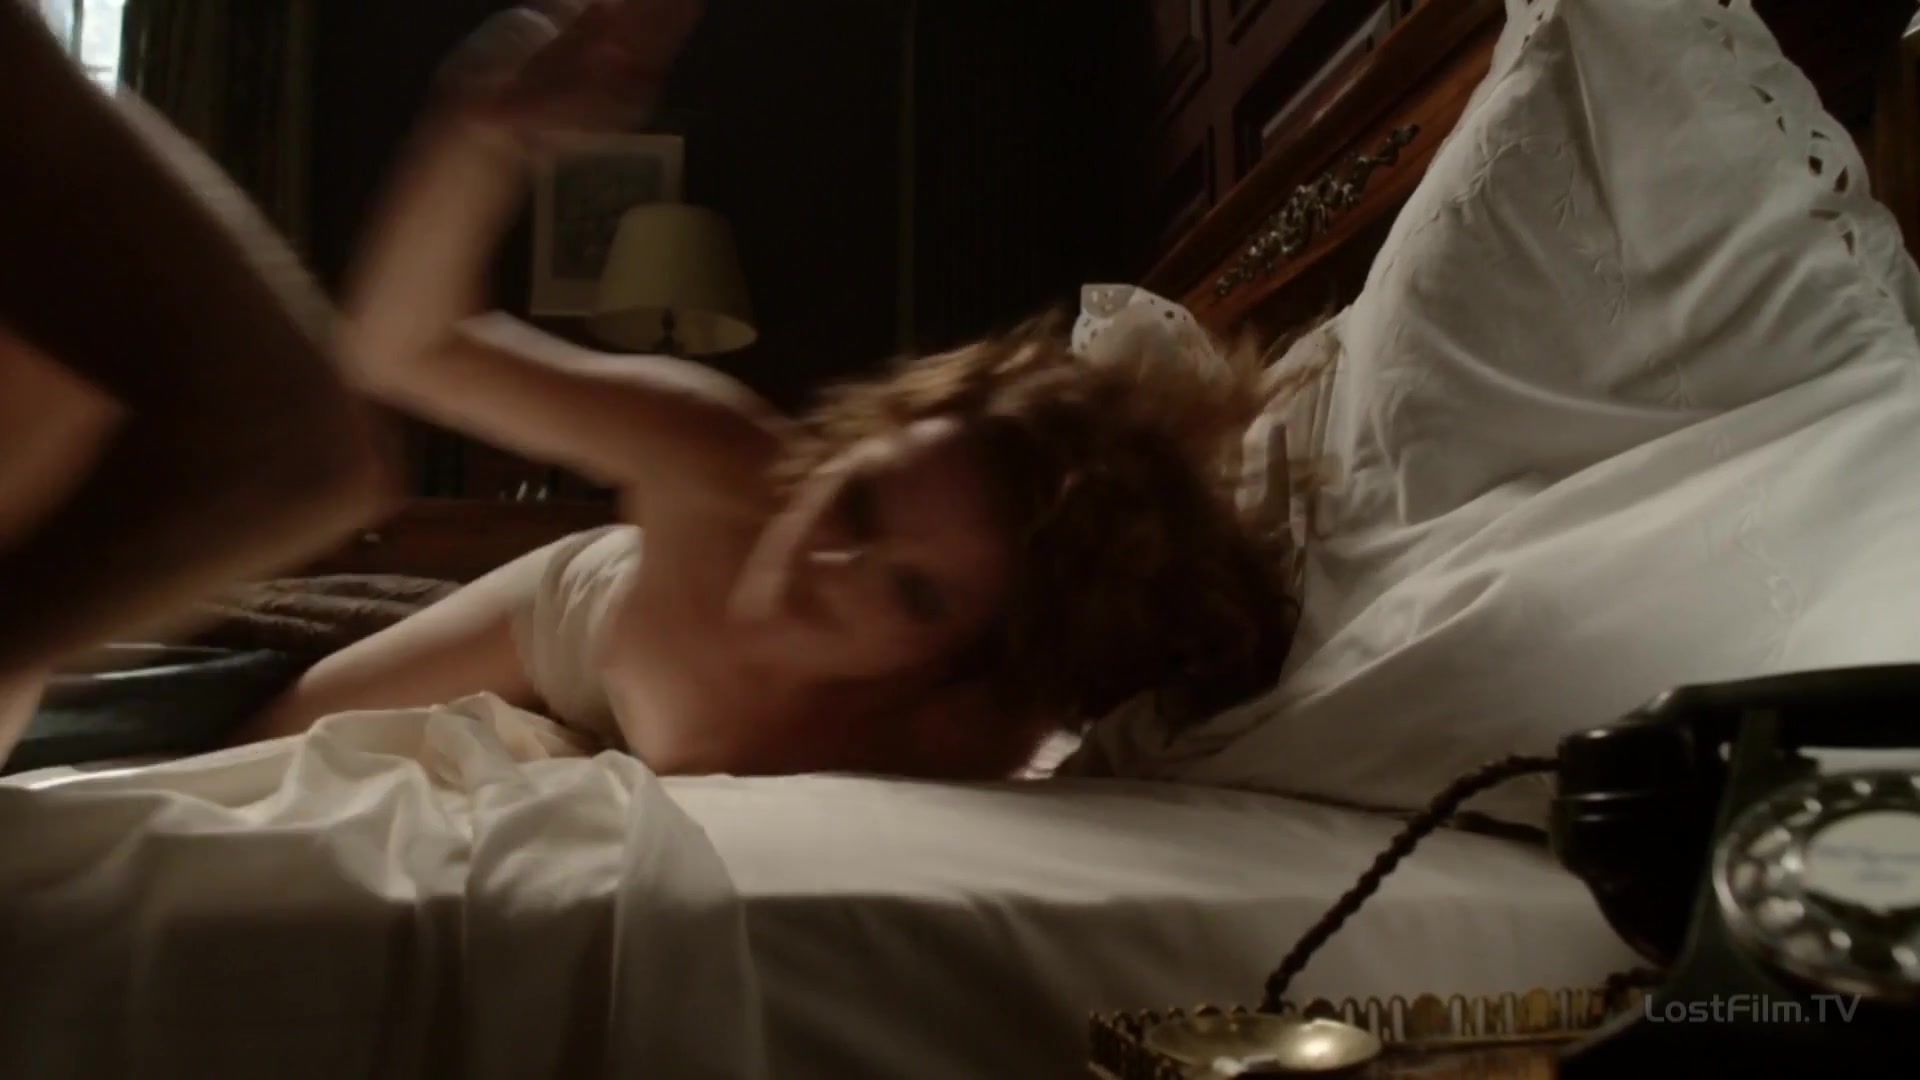 Nora Lili Horich nude - Fleming s01e01 (2014)